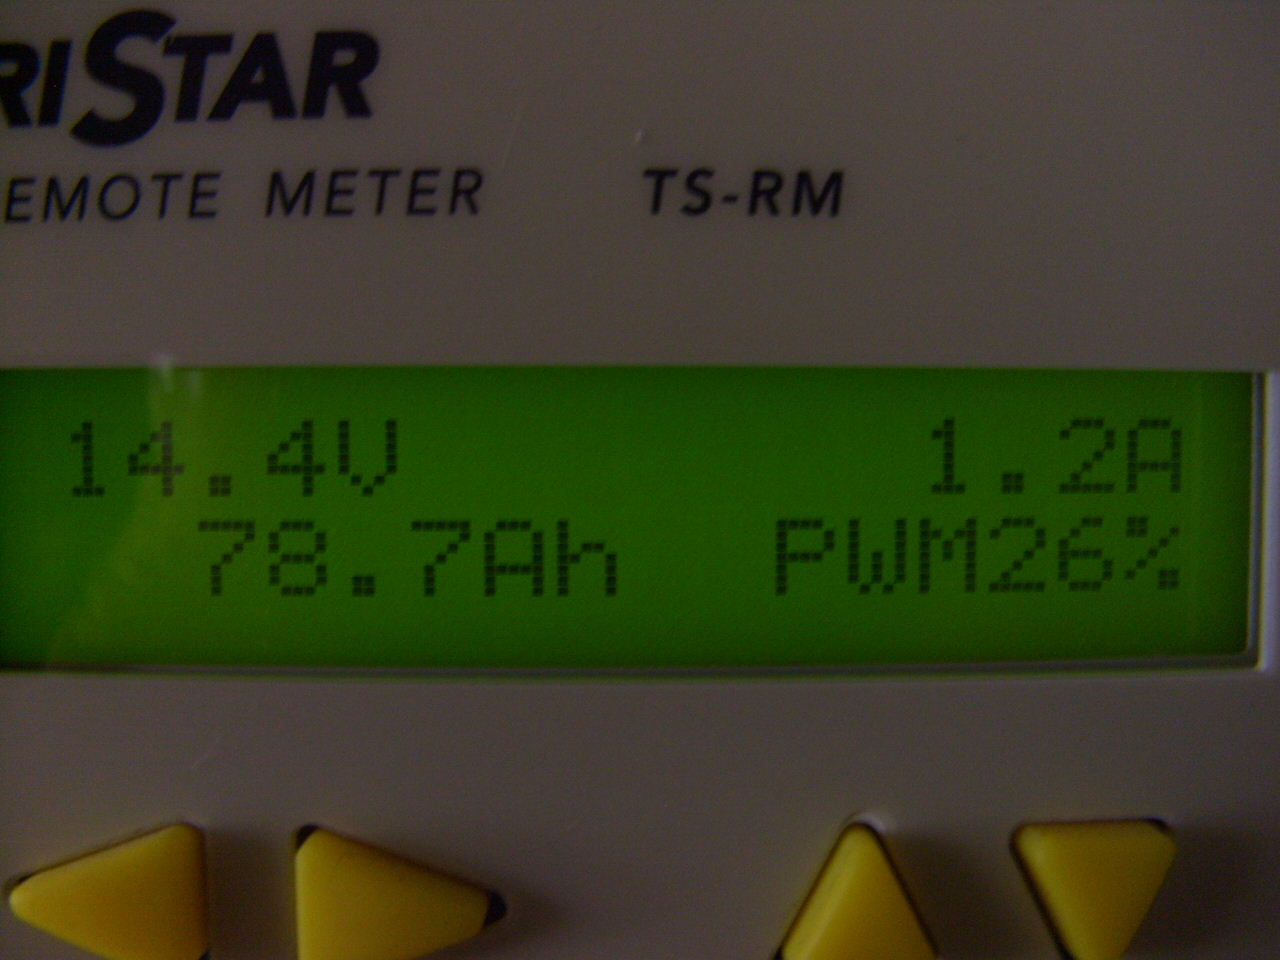 Tristar Charge Controller